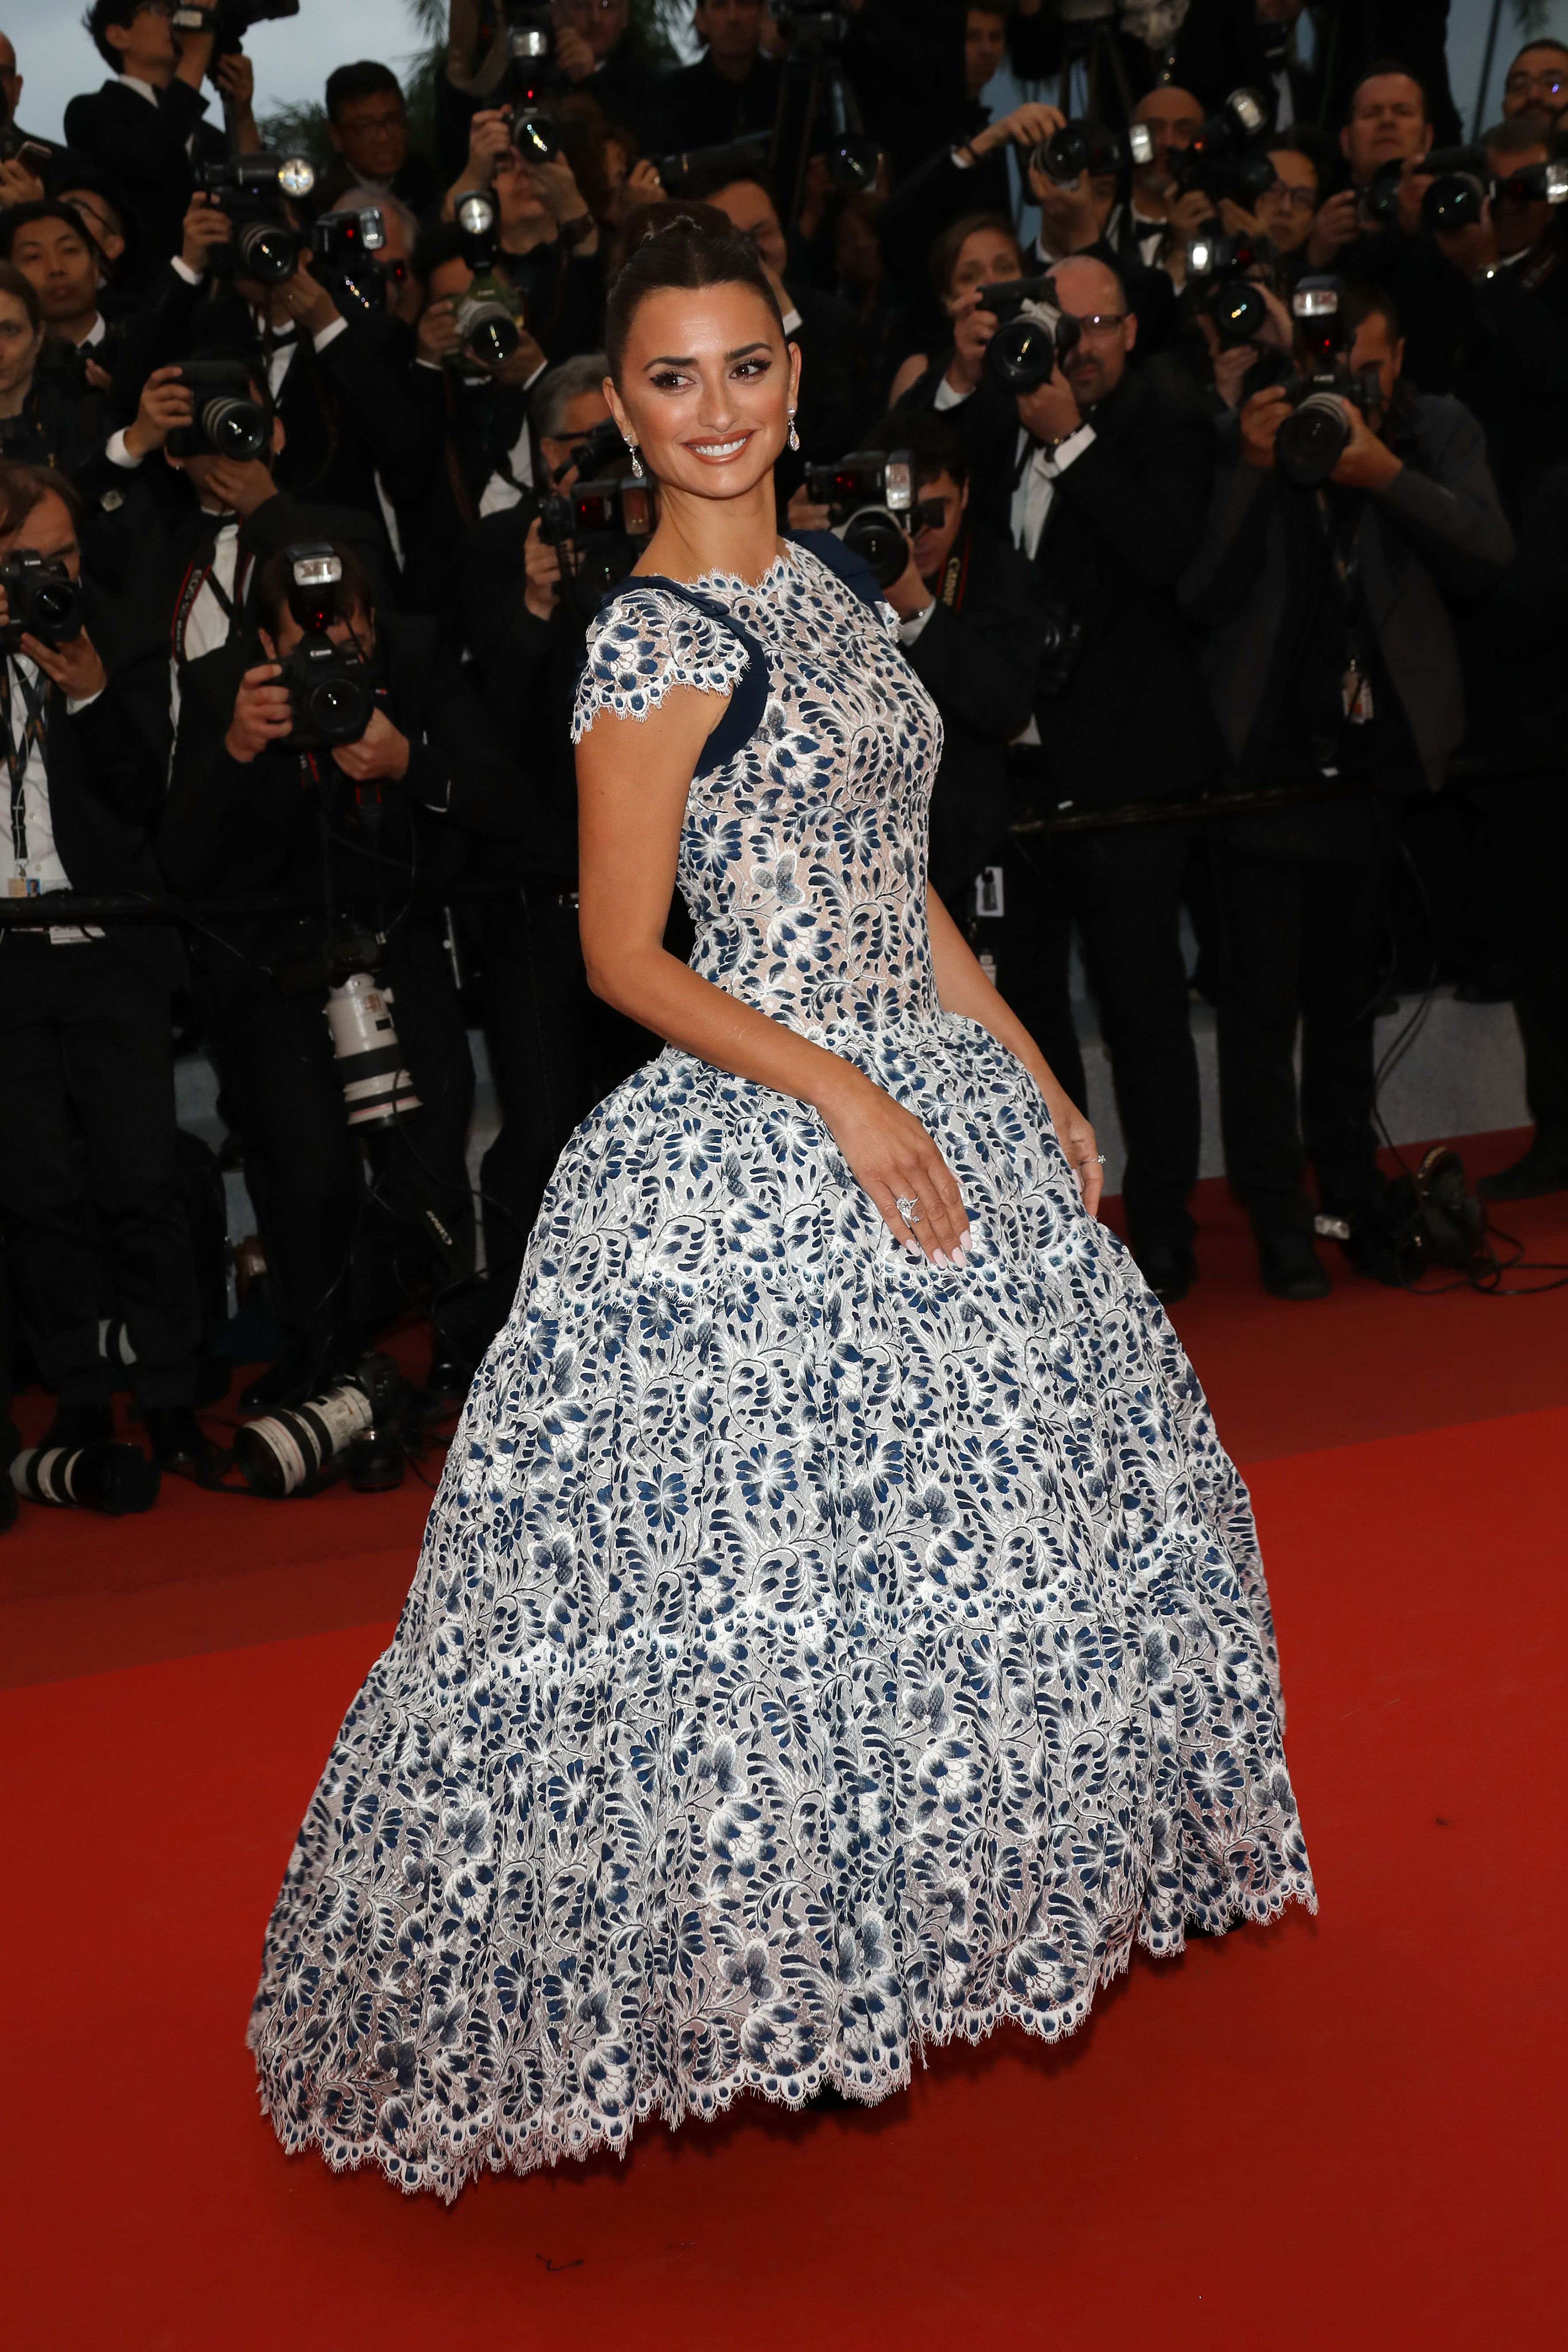 369548eda1eef0 Cannes Film Festival 2019: The Best Dressed Celebrities From The Red Carpet